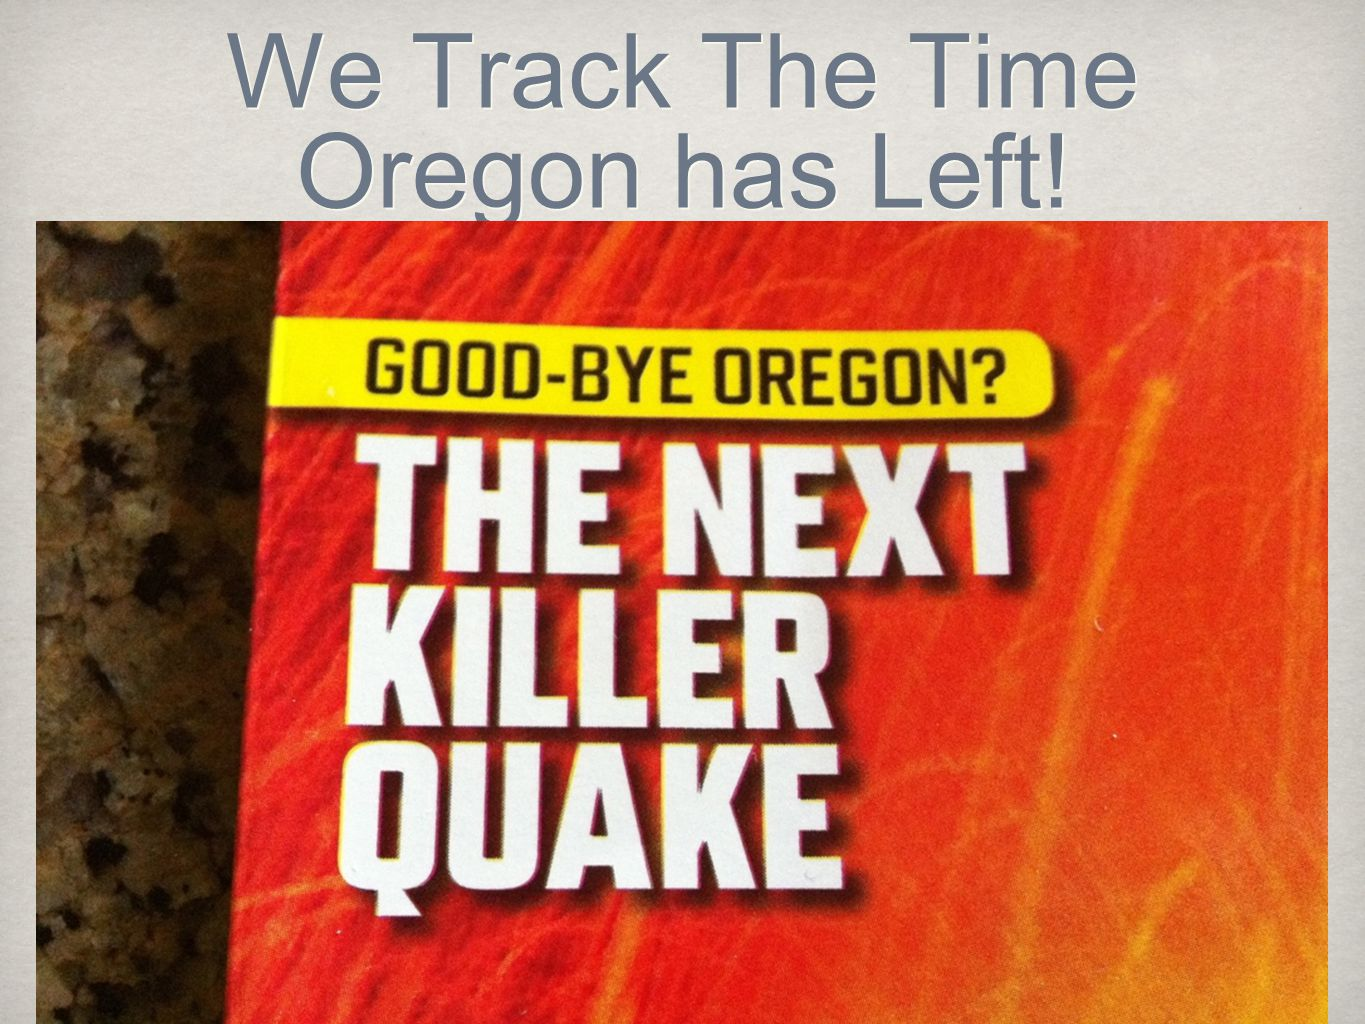 We Track The Time Oregon has Left!